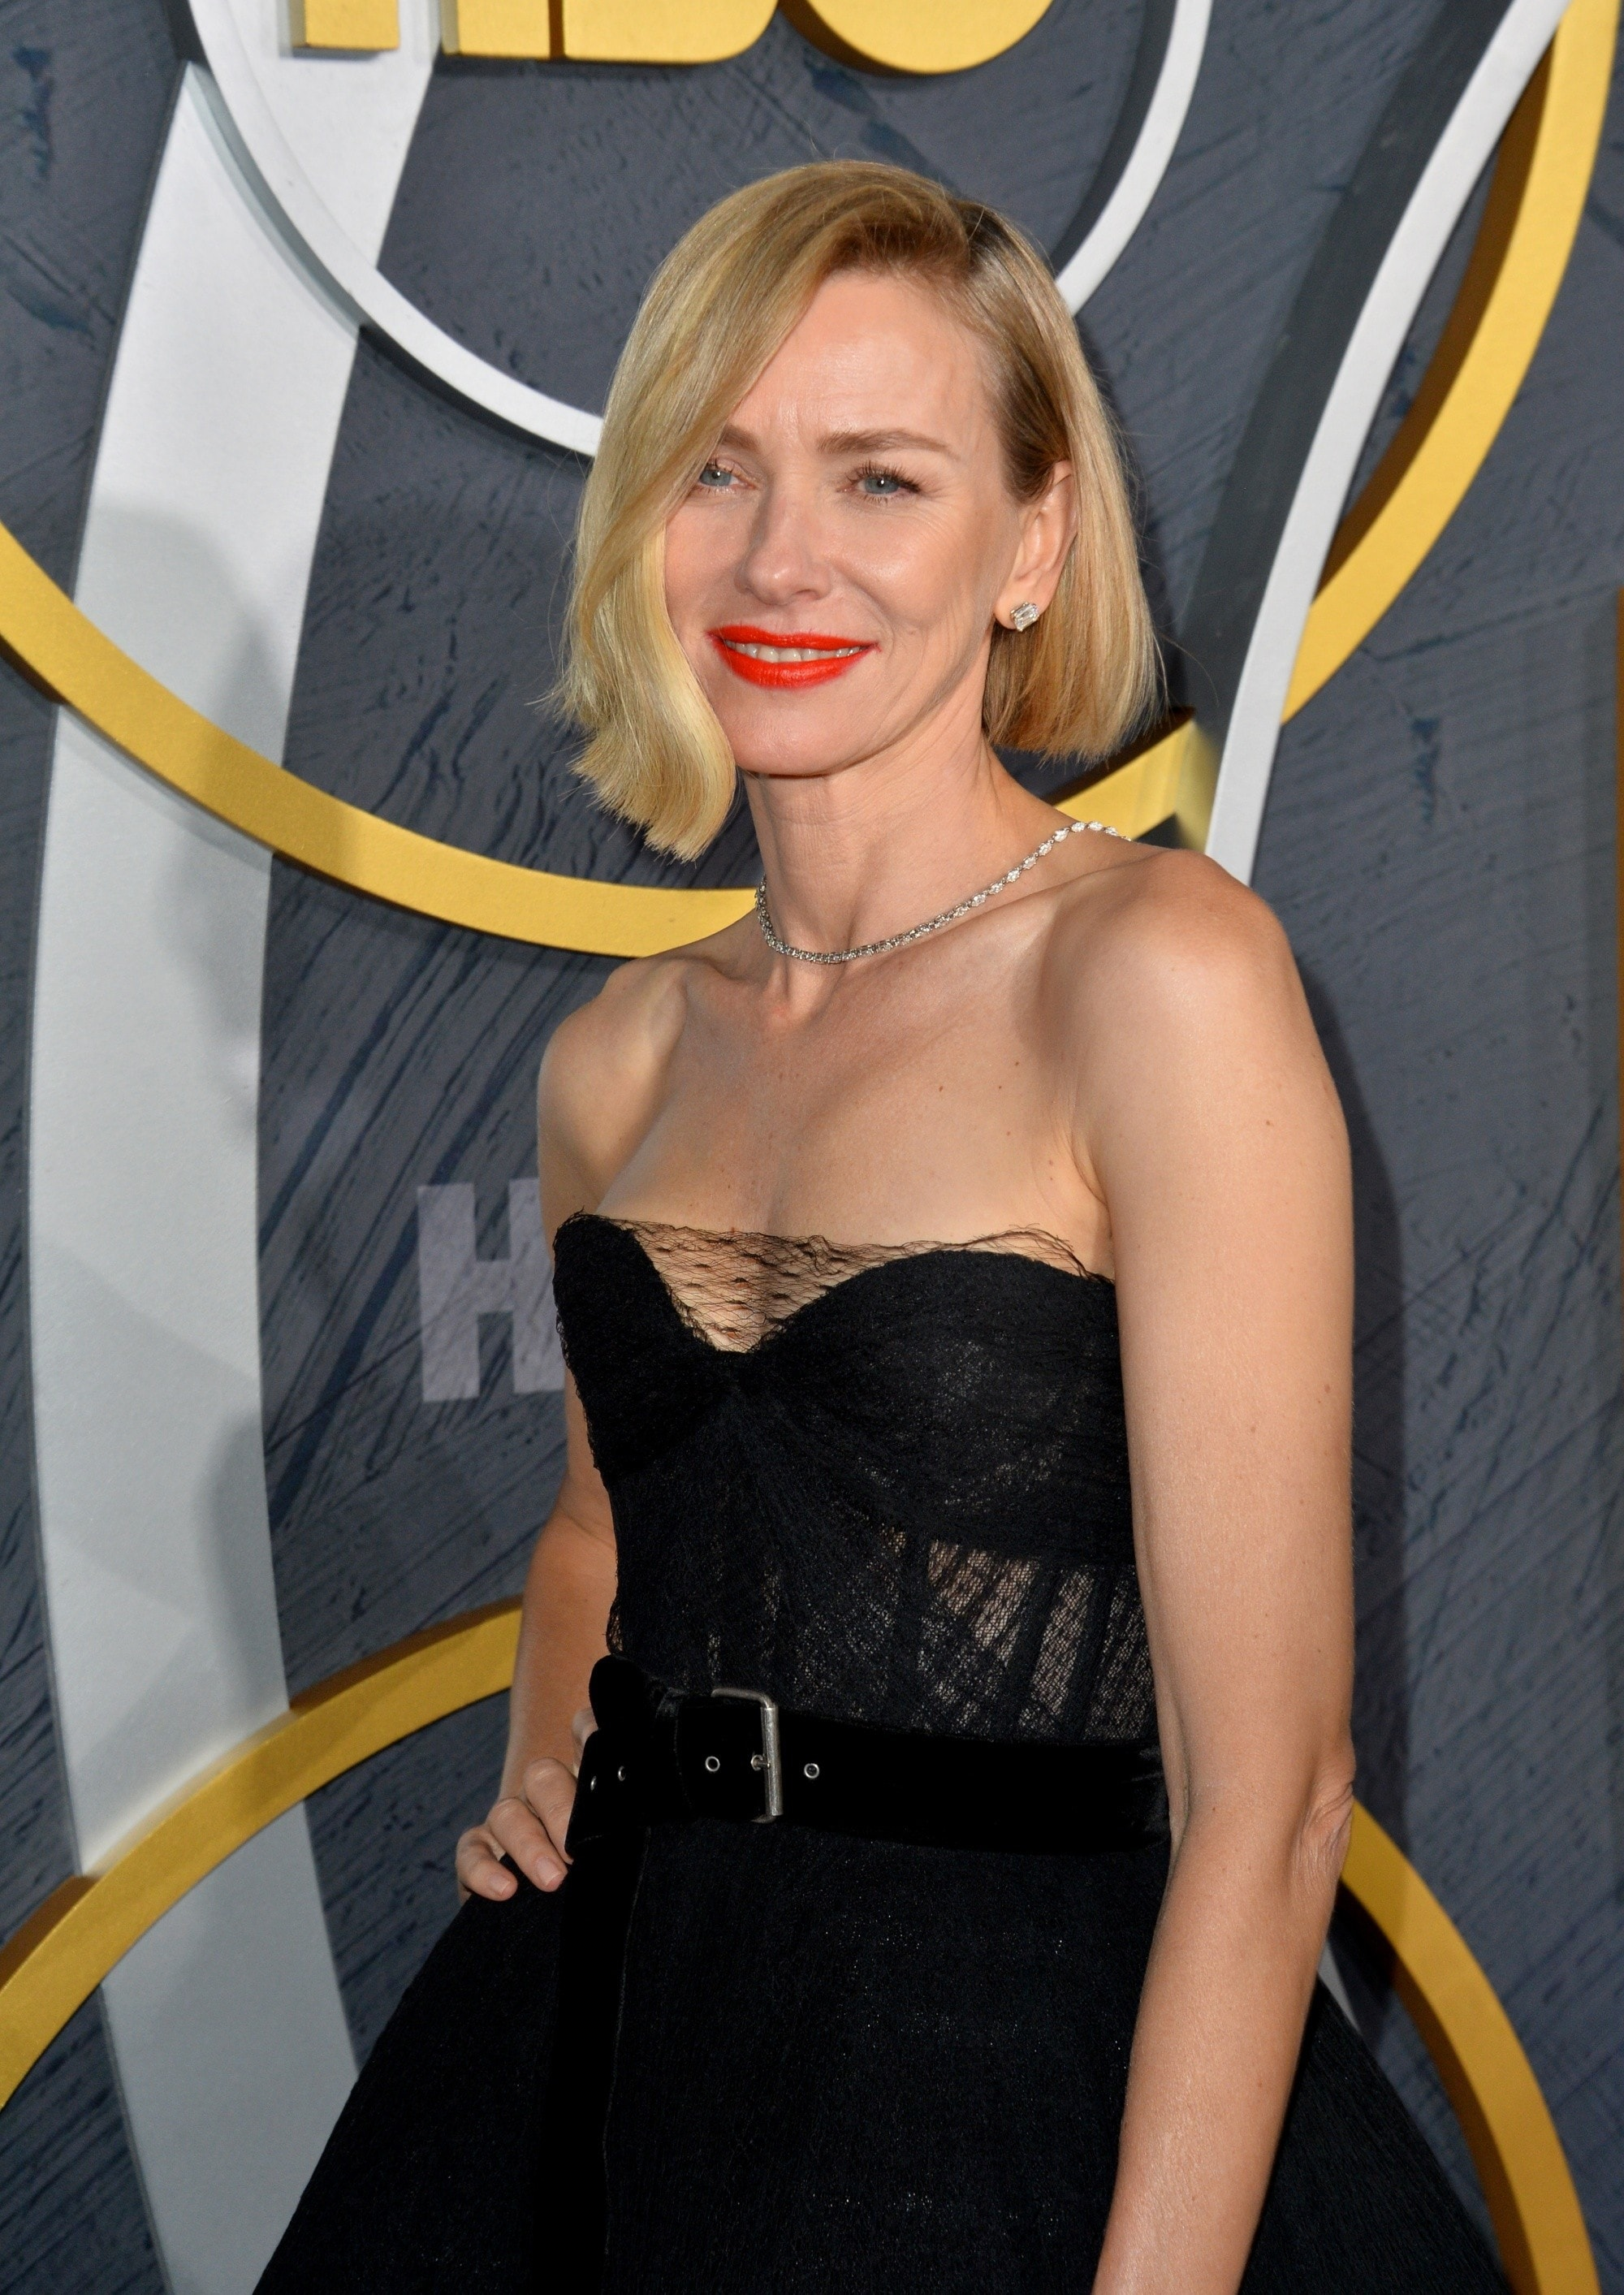 Emmy Awards 2019 Best Hairstyles: Naomi Watts with her side part bob